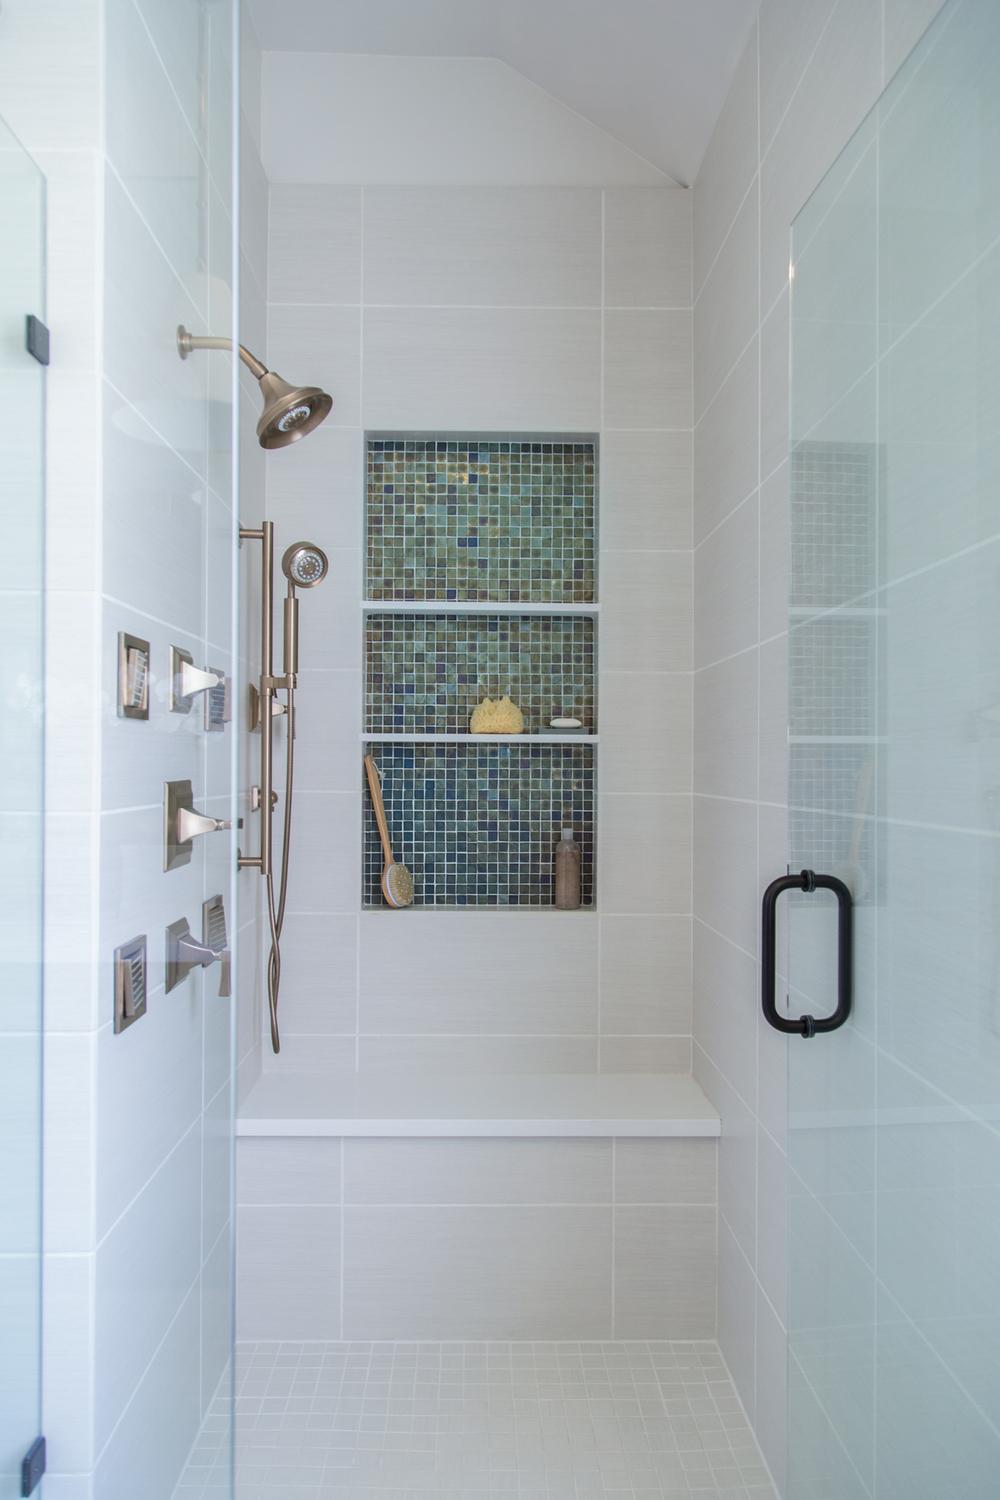 Vintage Bathroom remodel shower tile fixture Interior designer Carla Aston Photographer